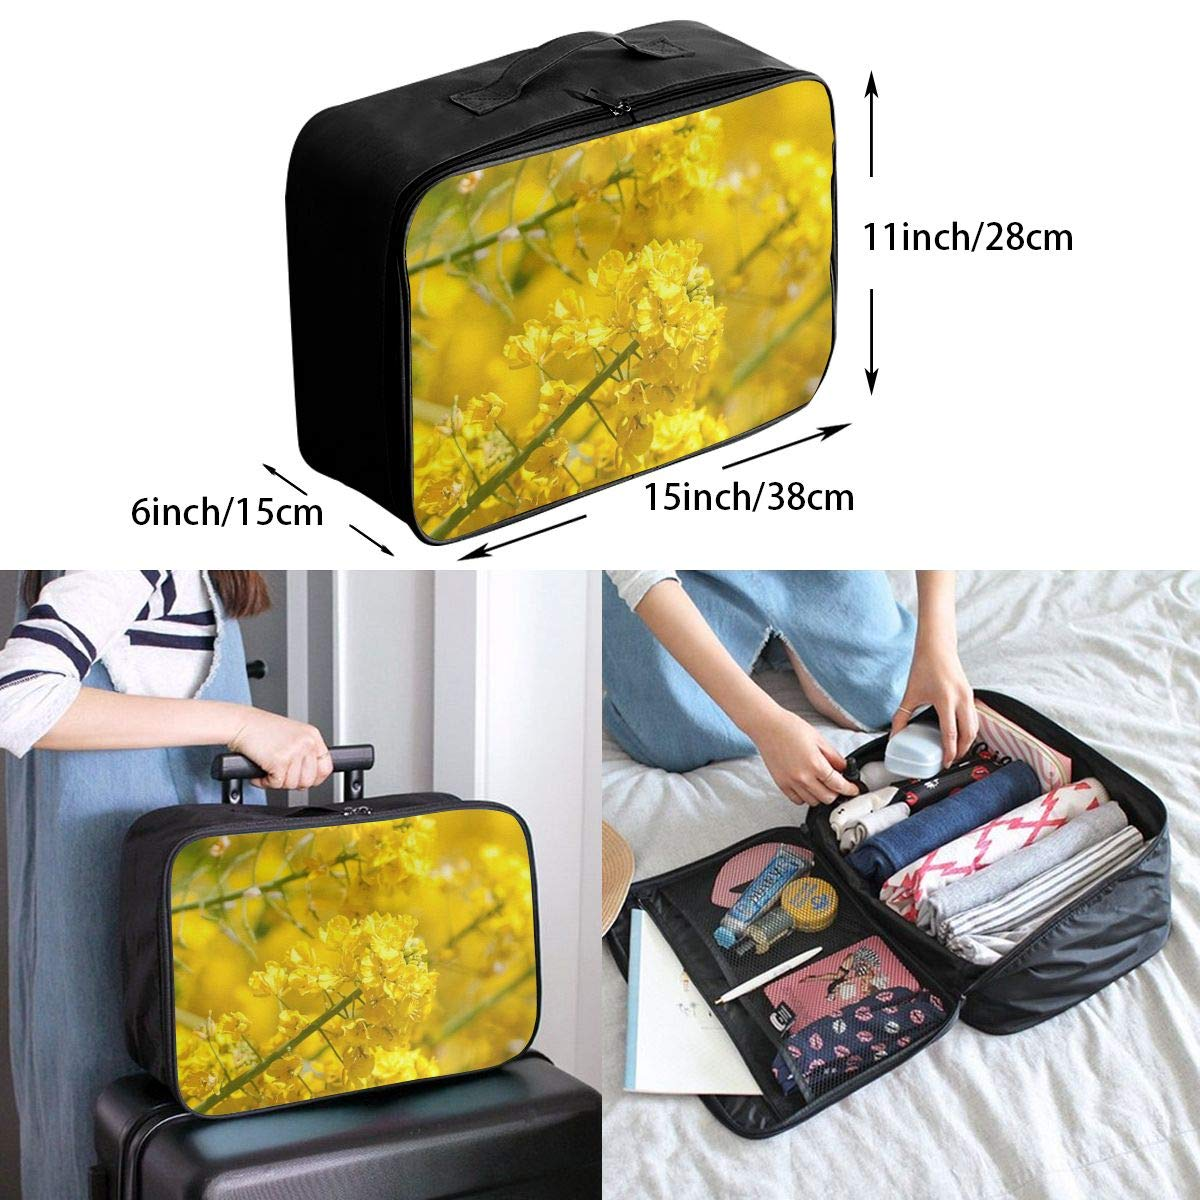 Travel Luggage Duffle Bag Lightweight Portable Handbag Flower Floral Large Capacity Waterproof Foldable Storage Tote